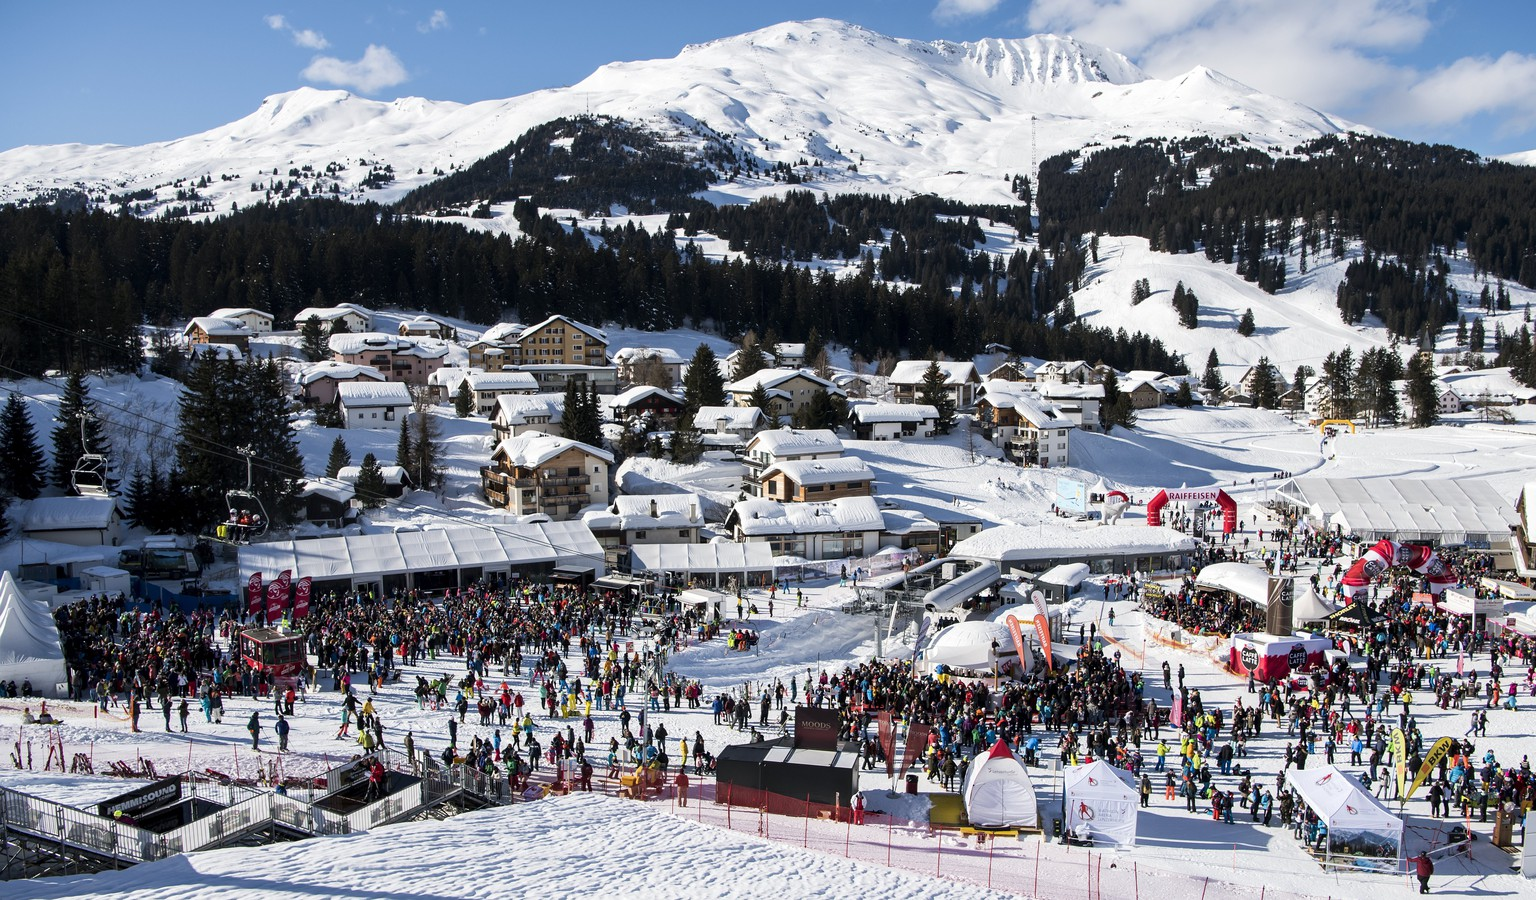 epa06478132 General view of the finish area during the second run of the women's Giant Slalom race at the FIS Alpine Skiing World Cup event in Lenzerheide, Switzerland, 27 January 2018.  EPA/JEAN-CHRISTOPHE BOTT